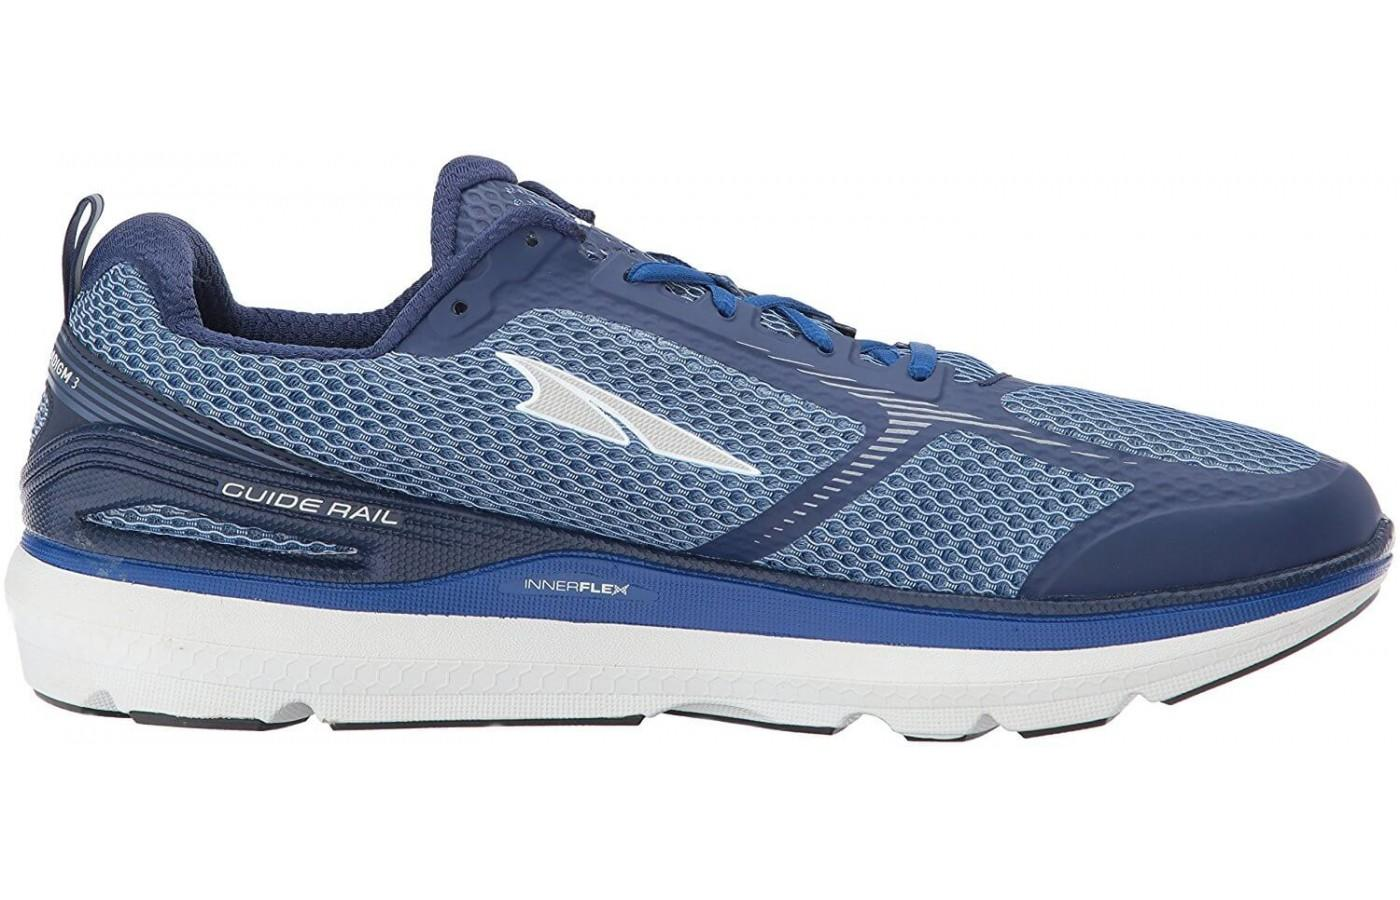 The Altra Paradigm 3.0 has a guide rail for off-track steering